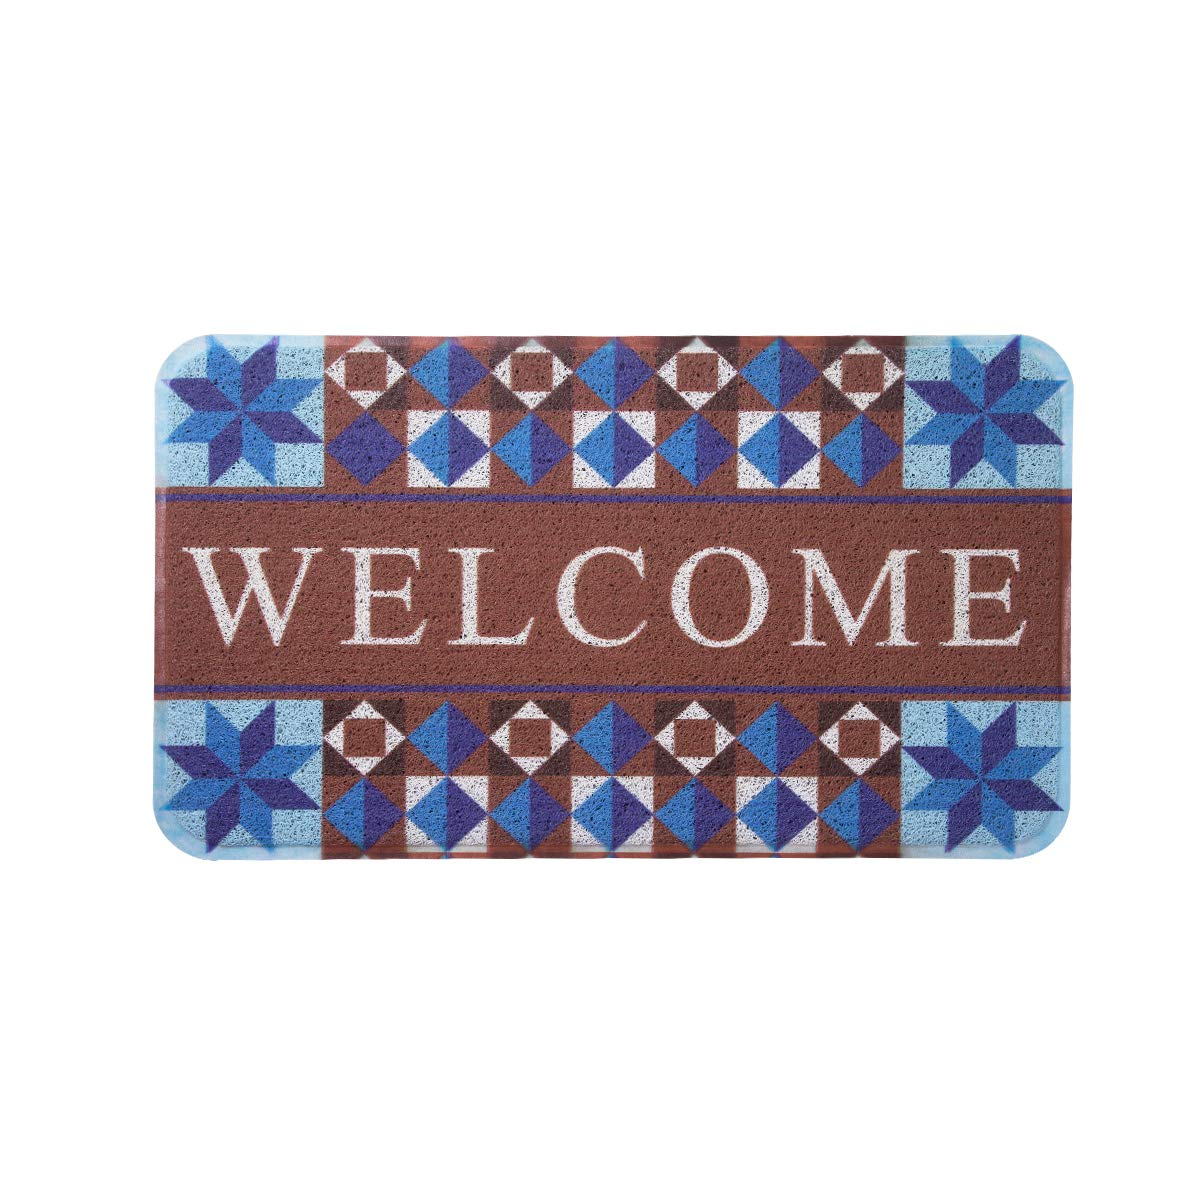 MAYSHINE Door Mat Non-Slip Mud Doormat Indoor/Outdoor Super Absorbs Washable Dirt Trapper Mats Rubber Backed Shoes Scraper House Entrance Rug for Garden- Welcome Colorful